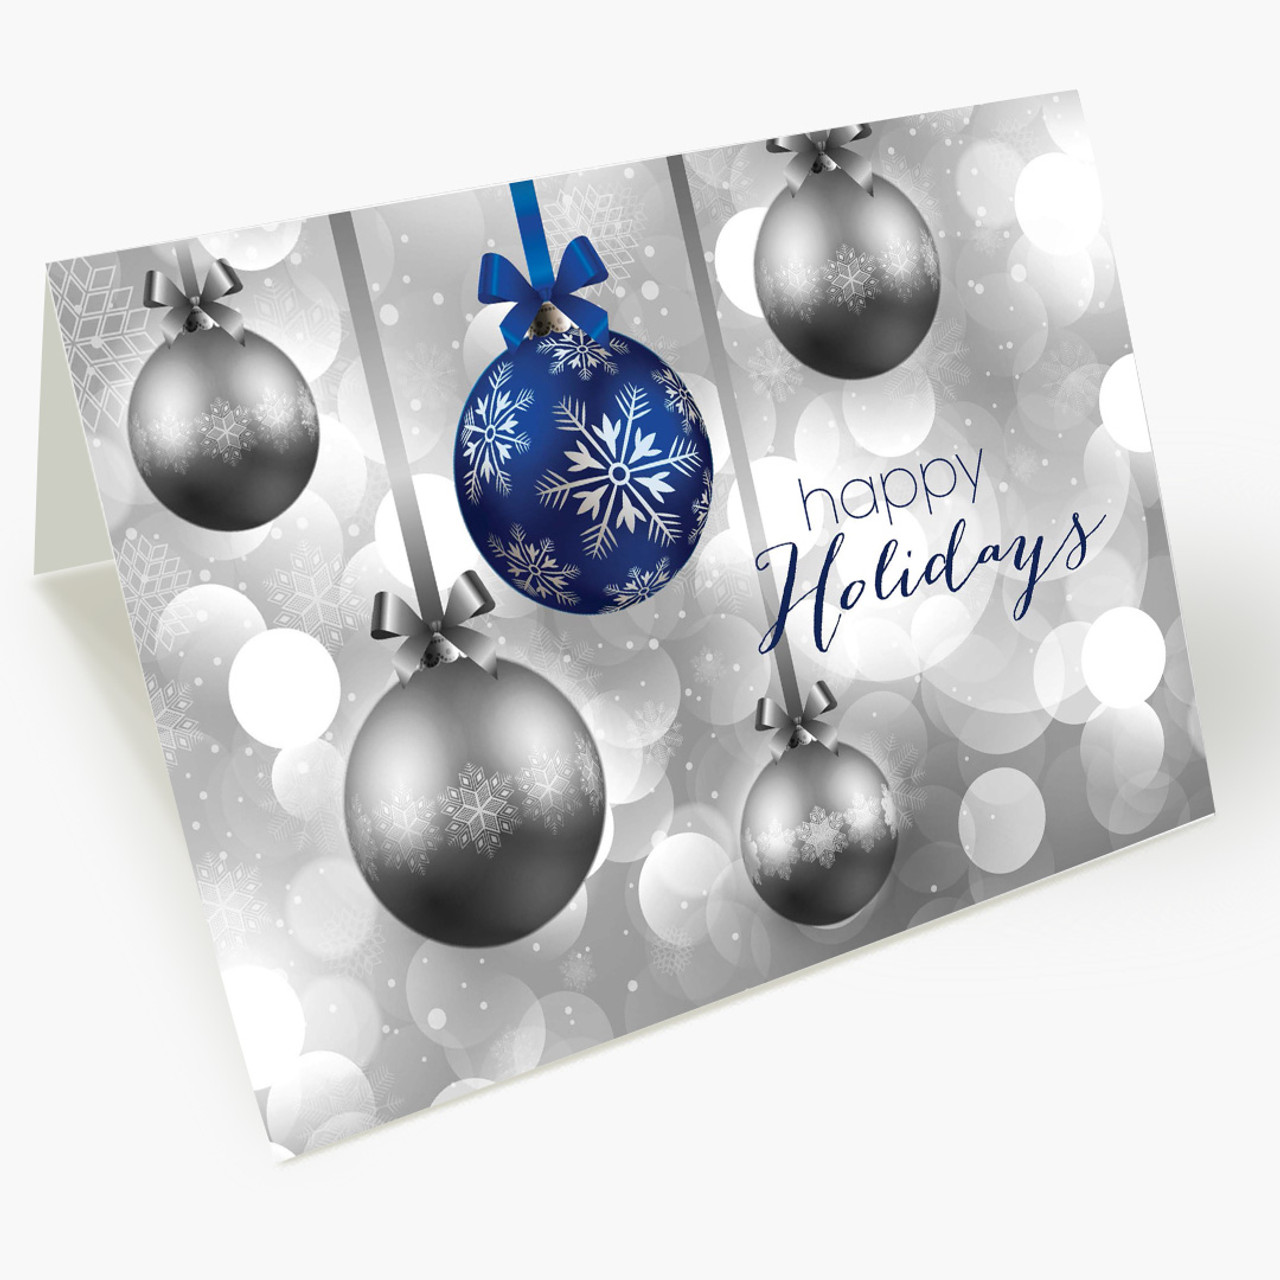 Hanging Ornaments - Blue Christmas Card